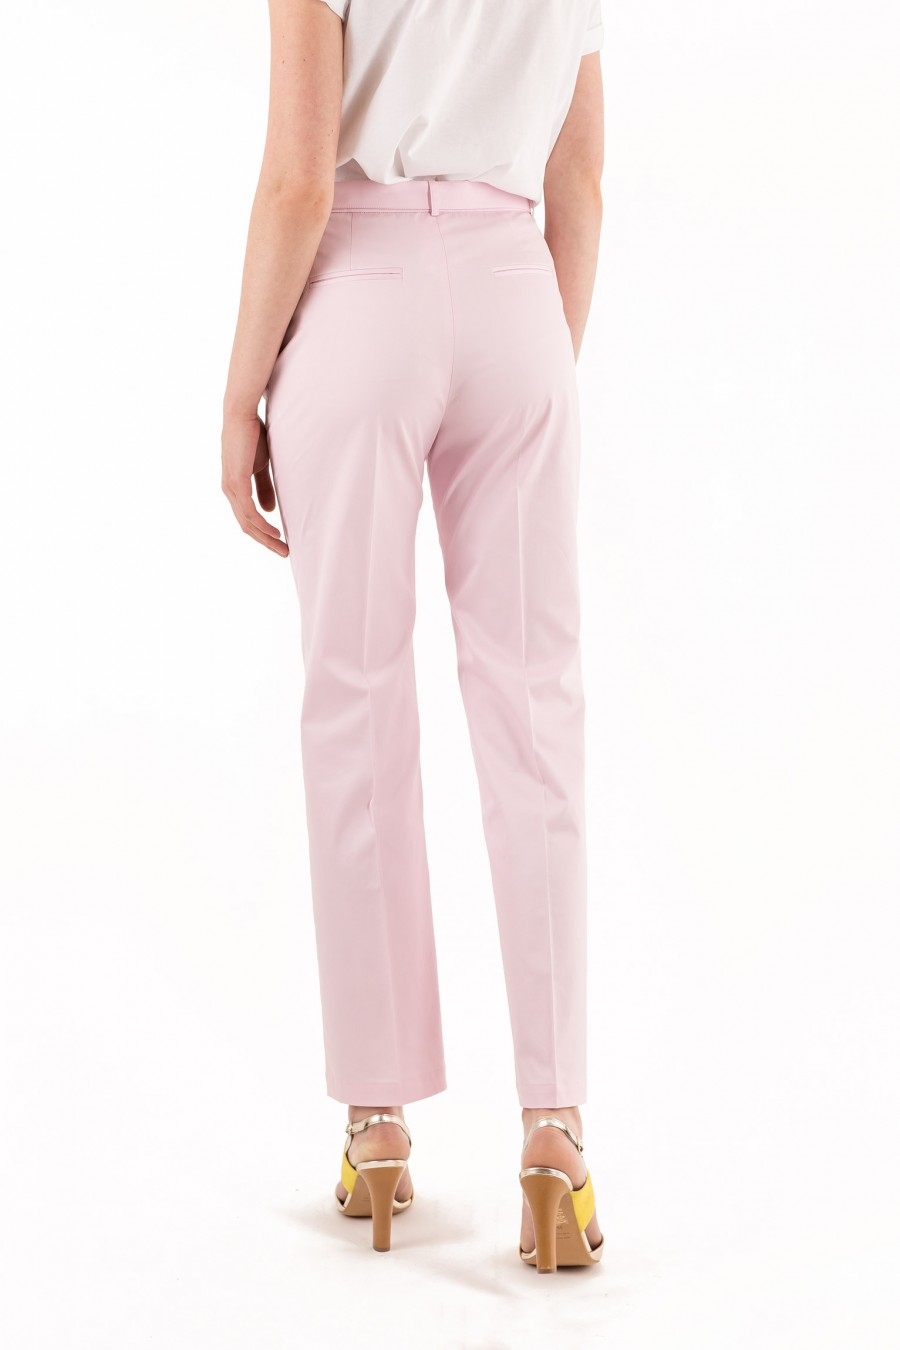 Pleated pink trousers